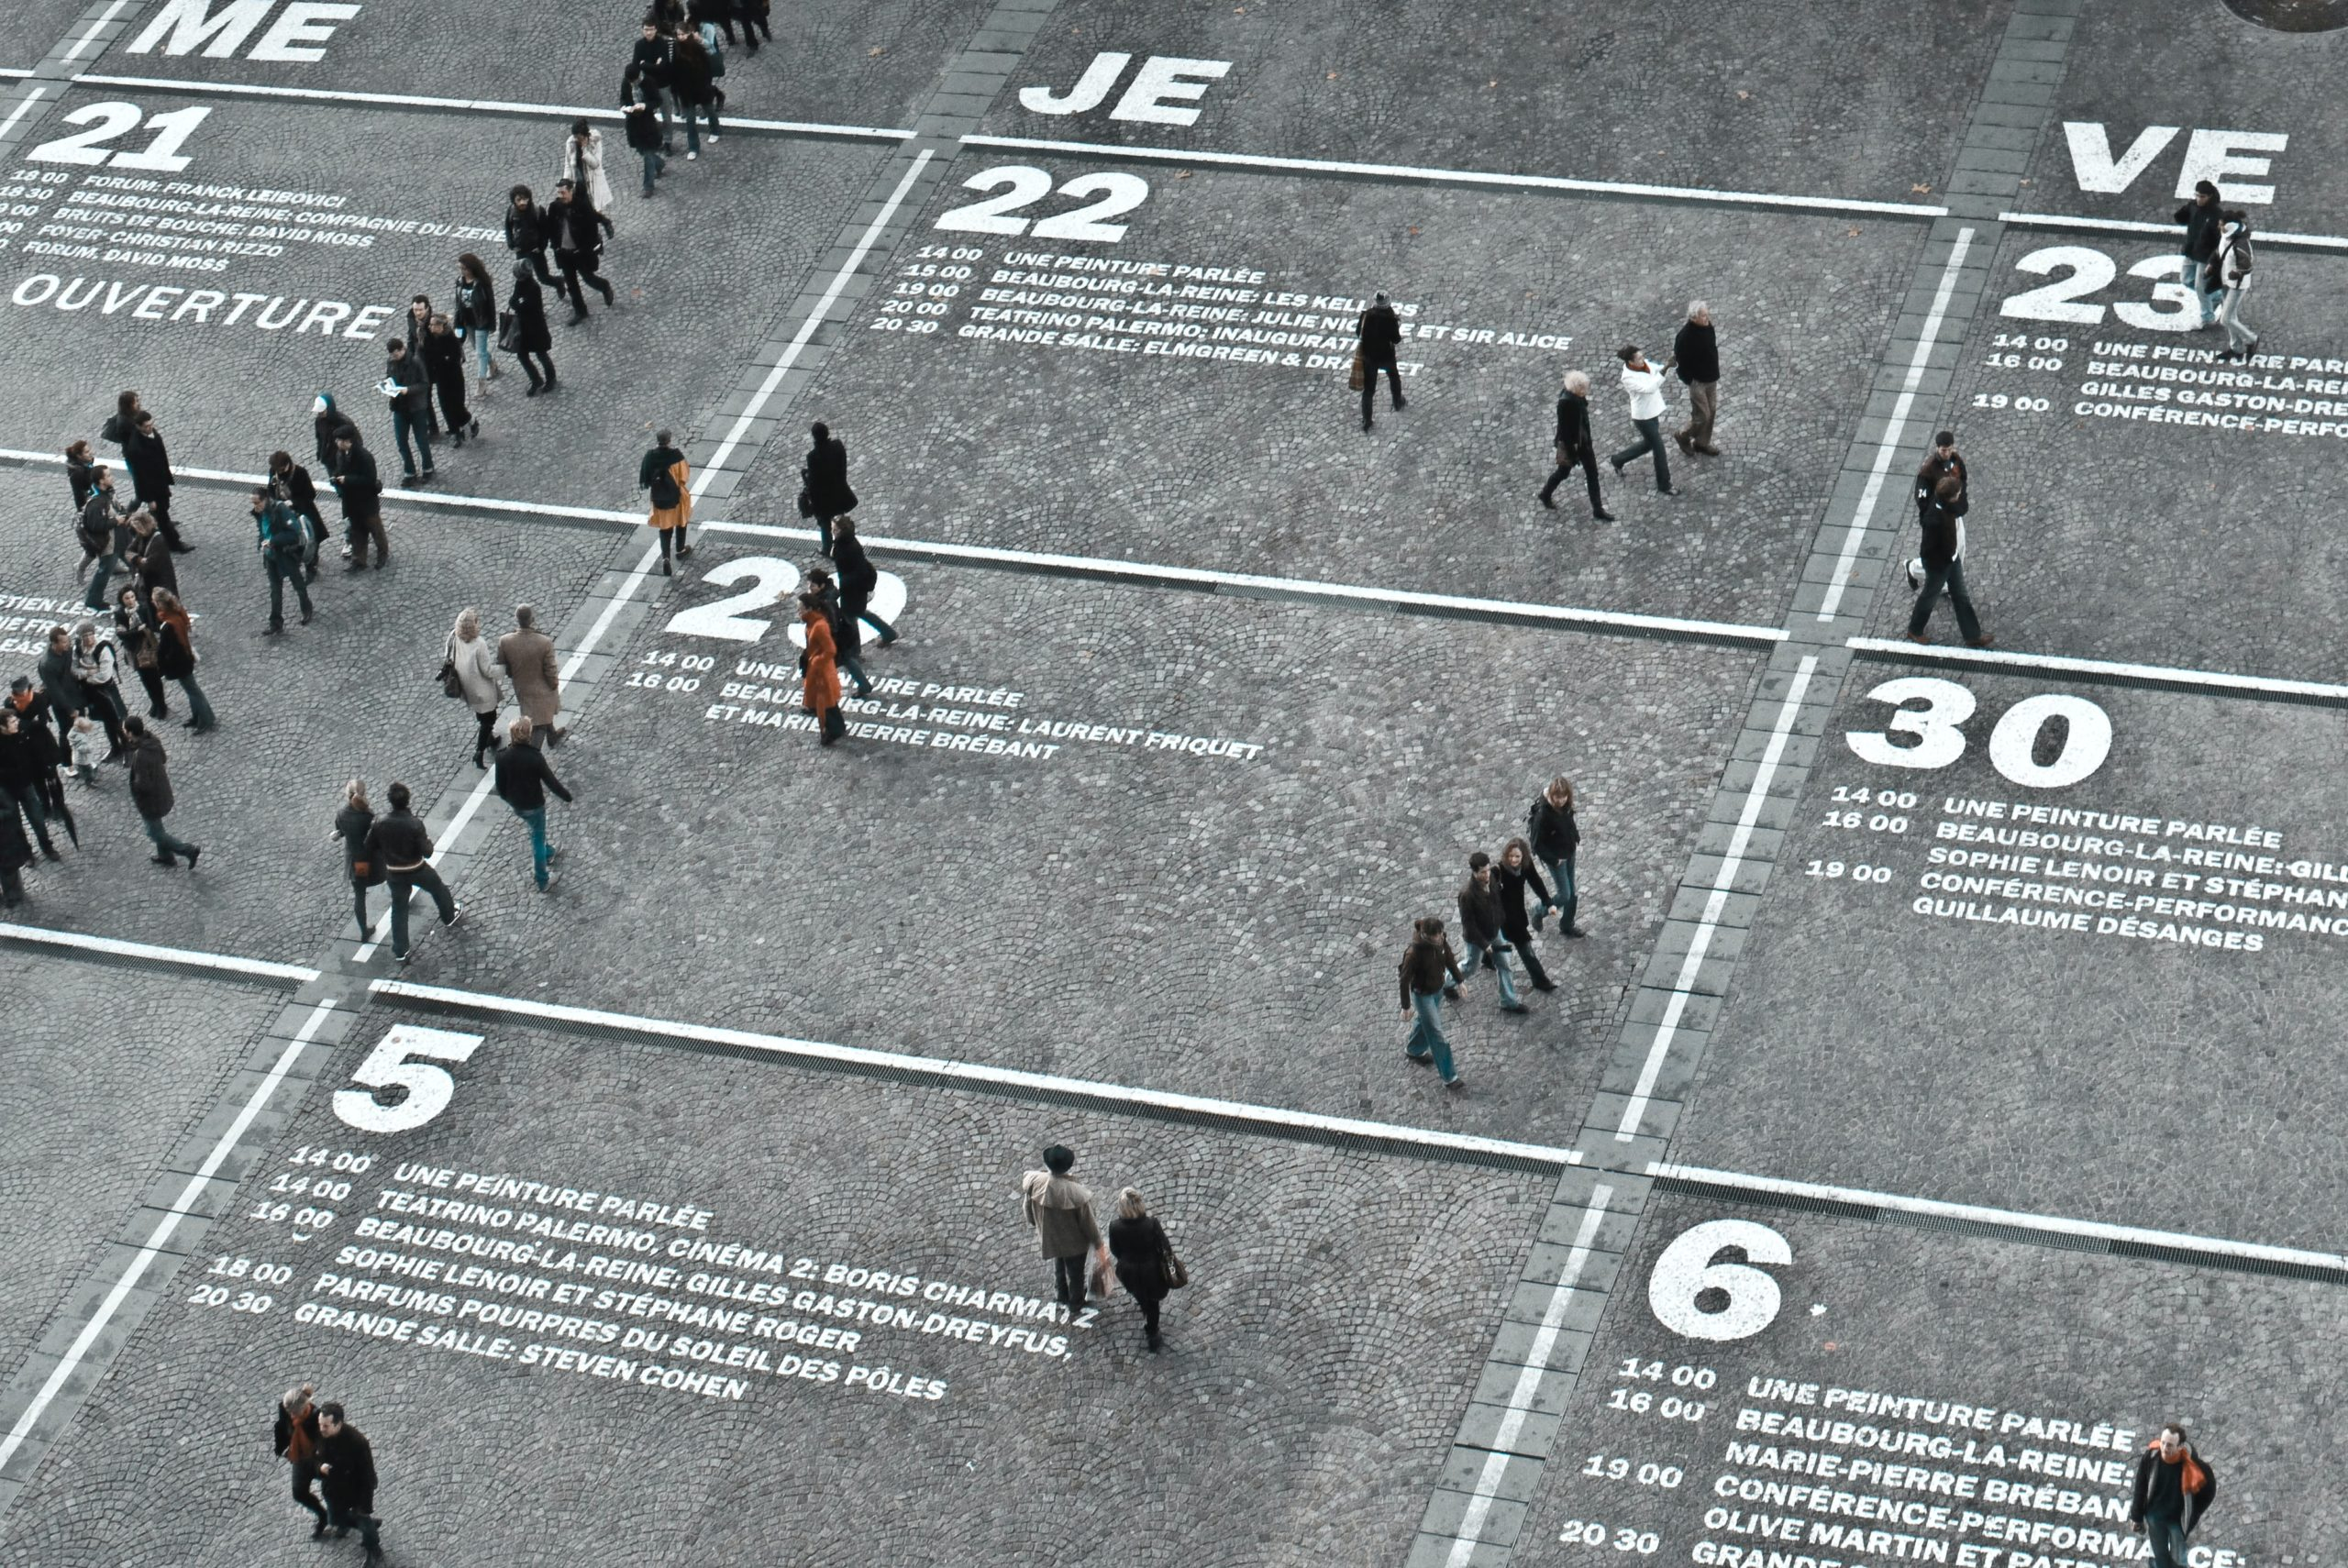 Why Cities Need More than Big Data